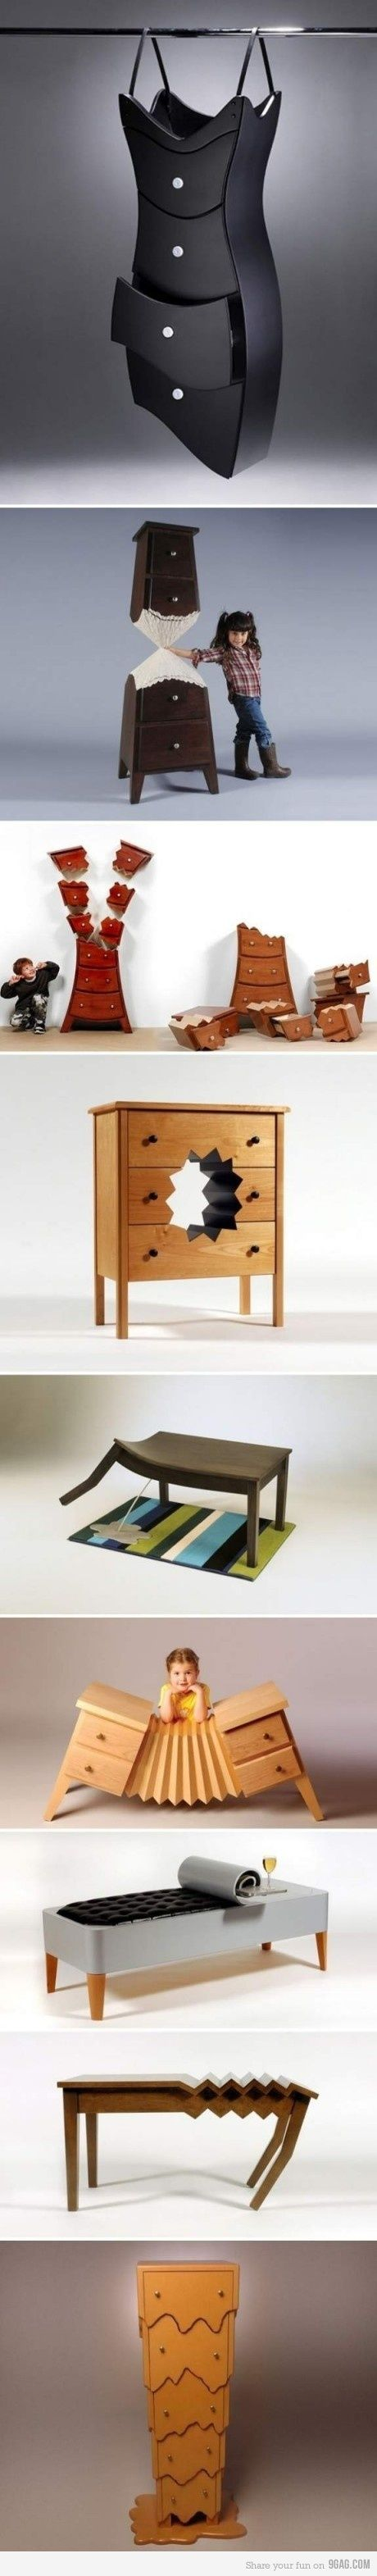 Fun Furniture, reminds me of Alice In Wonderland =)